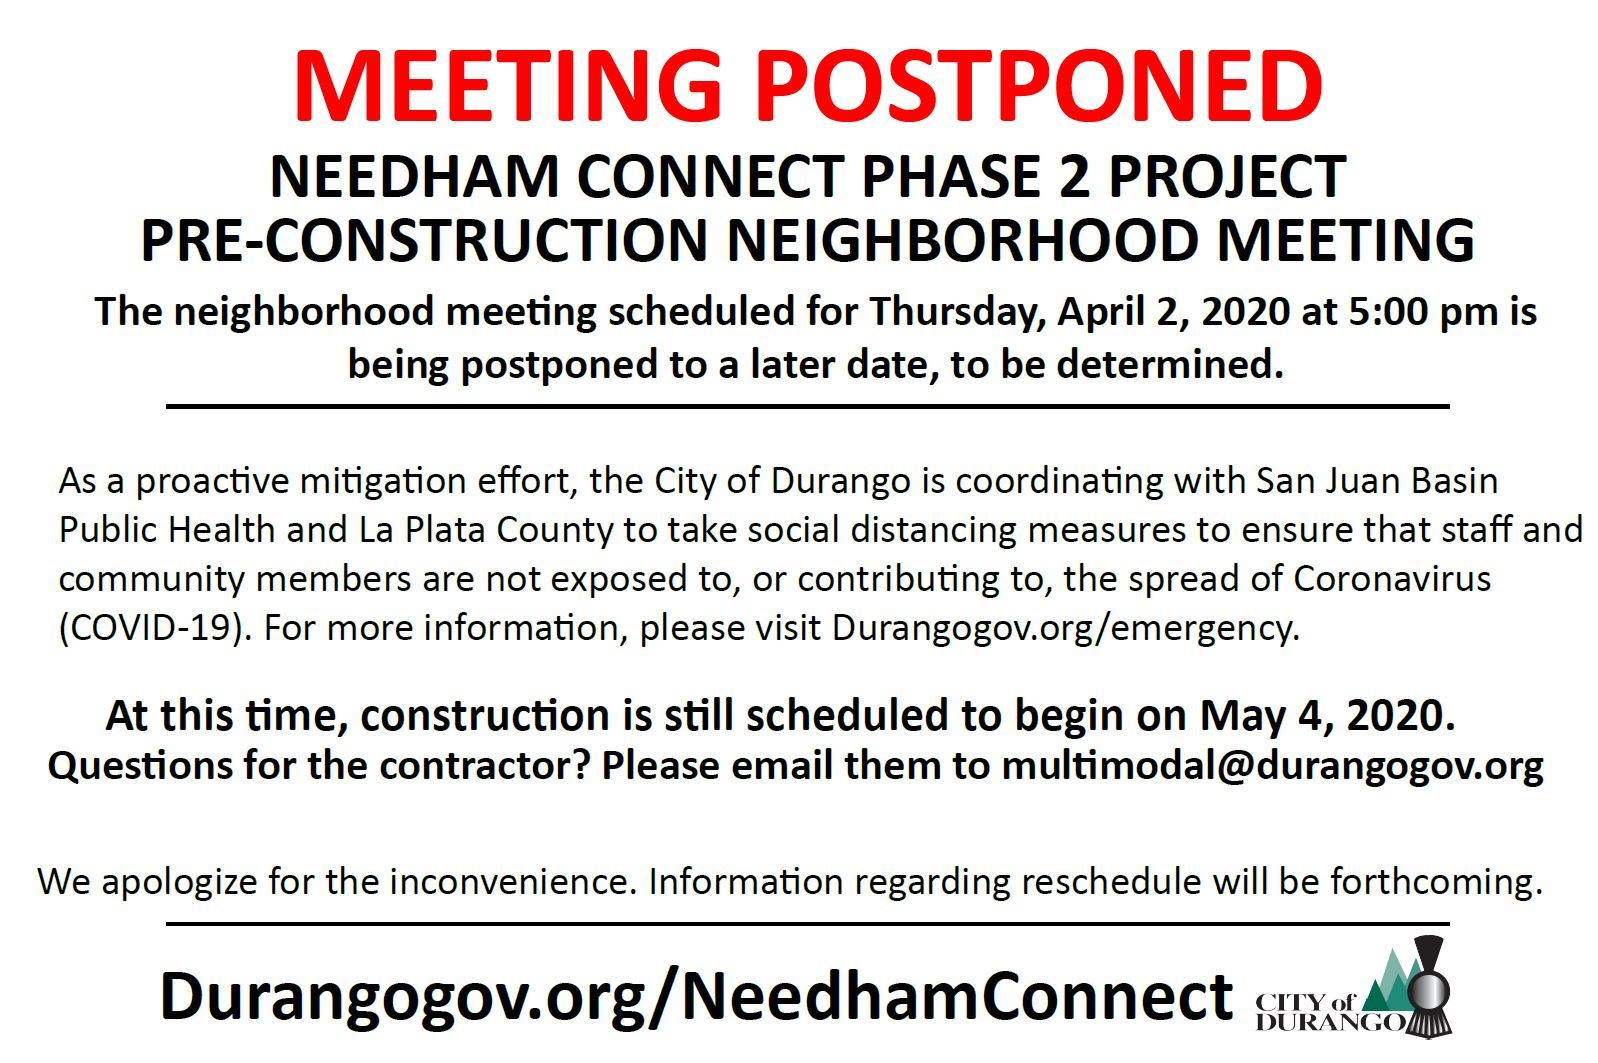 Needham Connect public meeting canceled